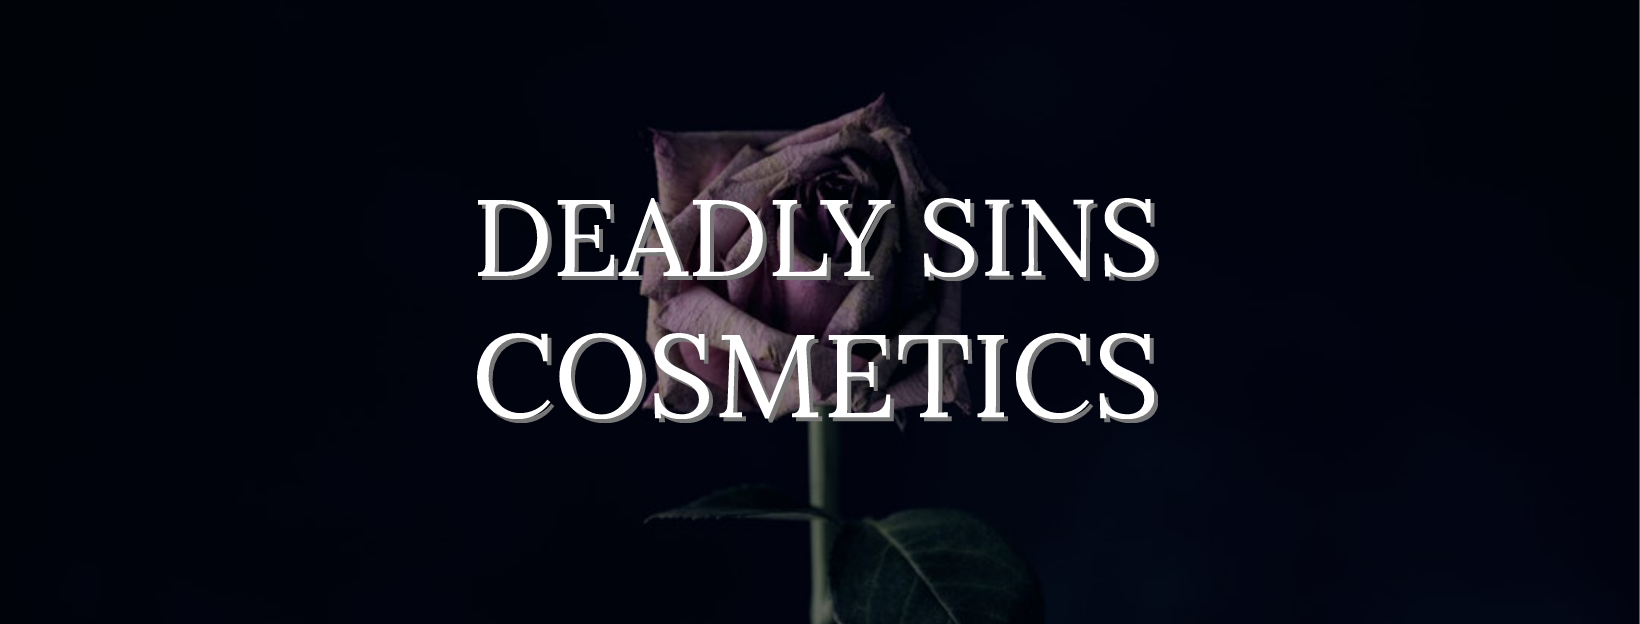 Deadly Sins Cosmetics Logo